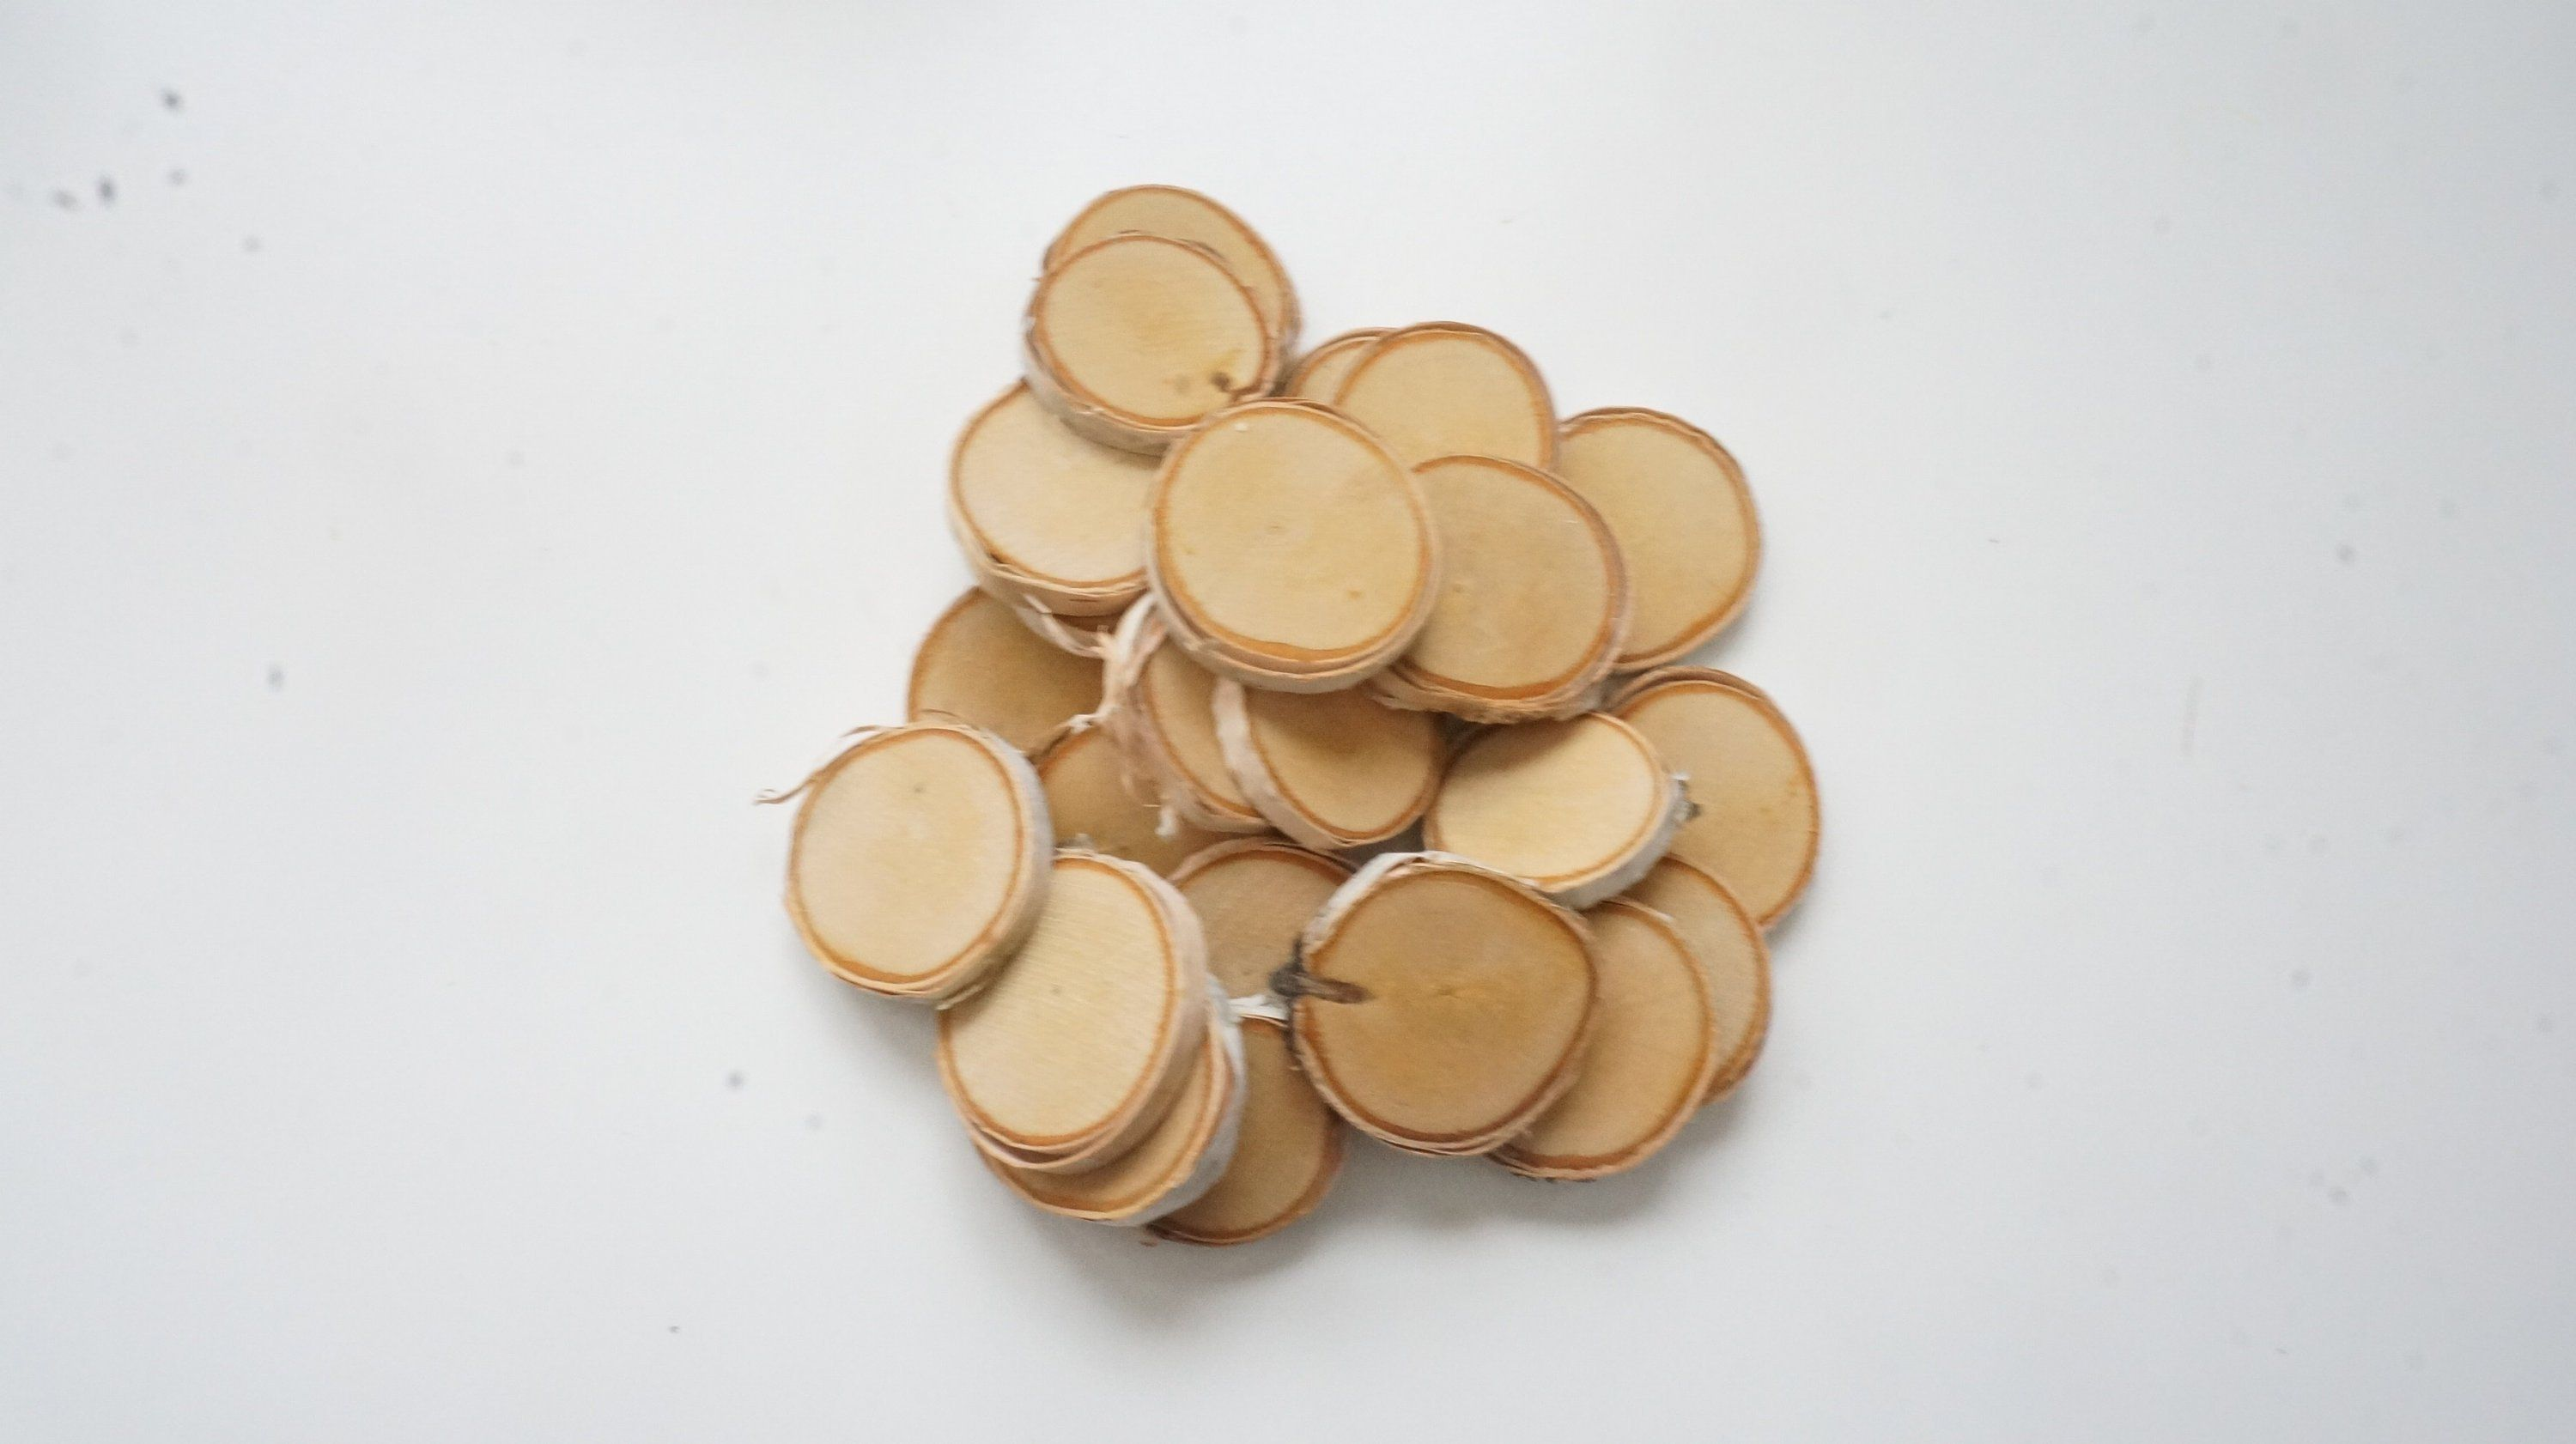 Small Birch Wood Slices 1 3 8 1 7 8 Inch Set Of 25 Ornament Blanks Bulk Mini Tree Slabs Tiny Log Discs Pyrography Supplies Wood Slices What Sells On Etsy Etsy Shop